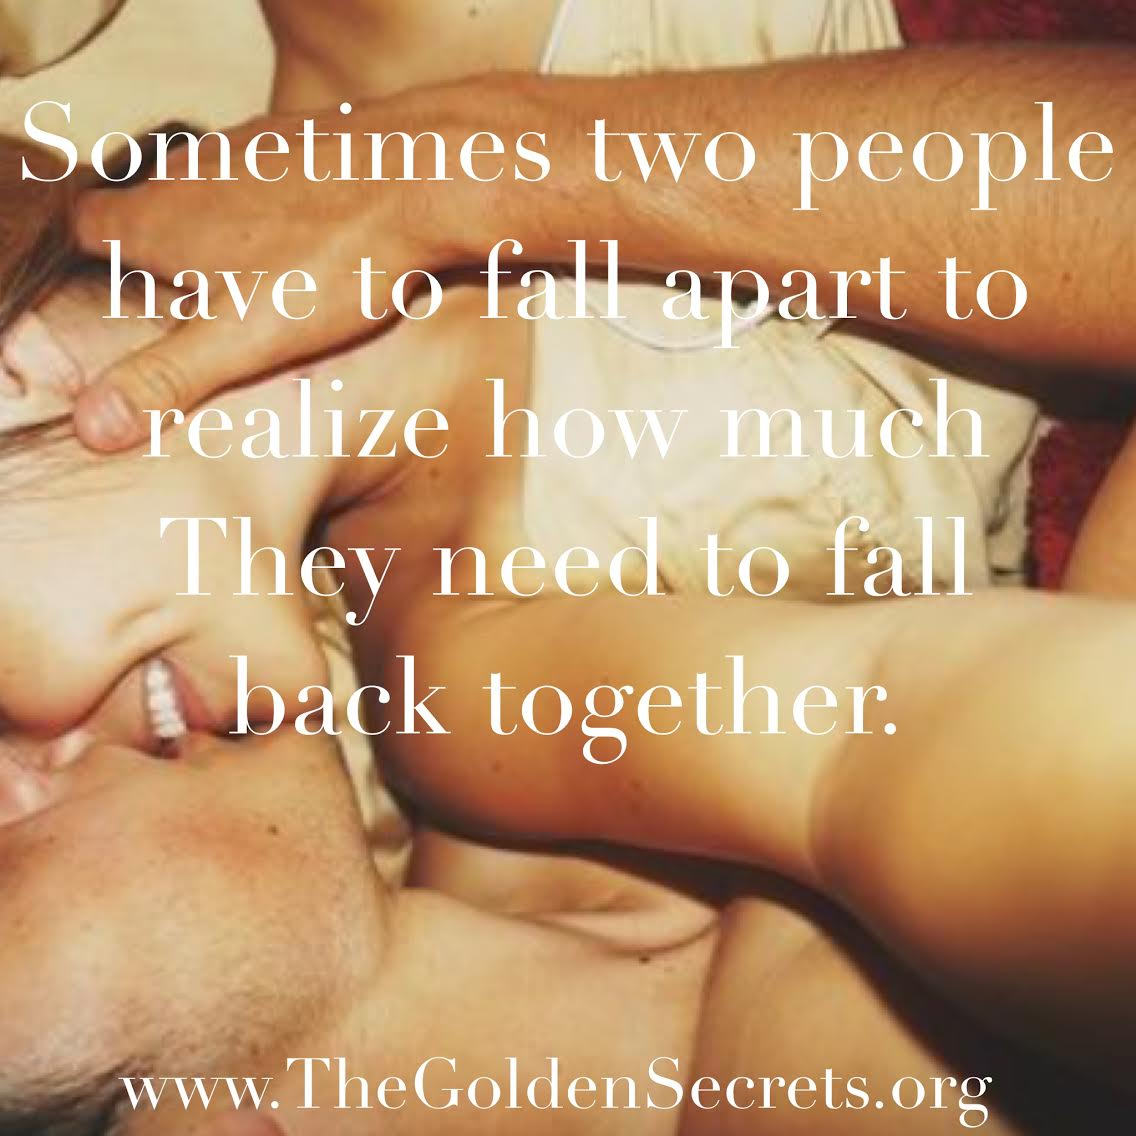 Love Each Other When Two Souls: We're All In This Together